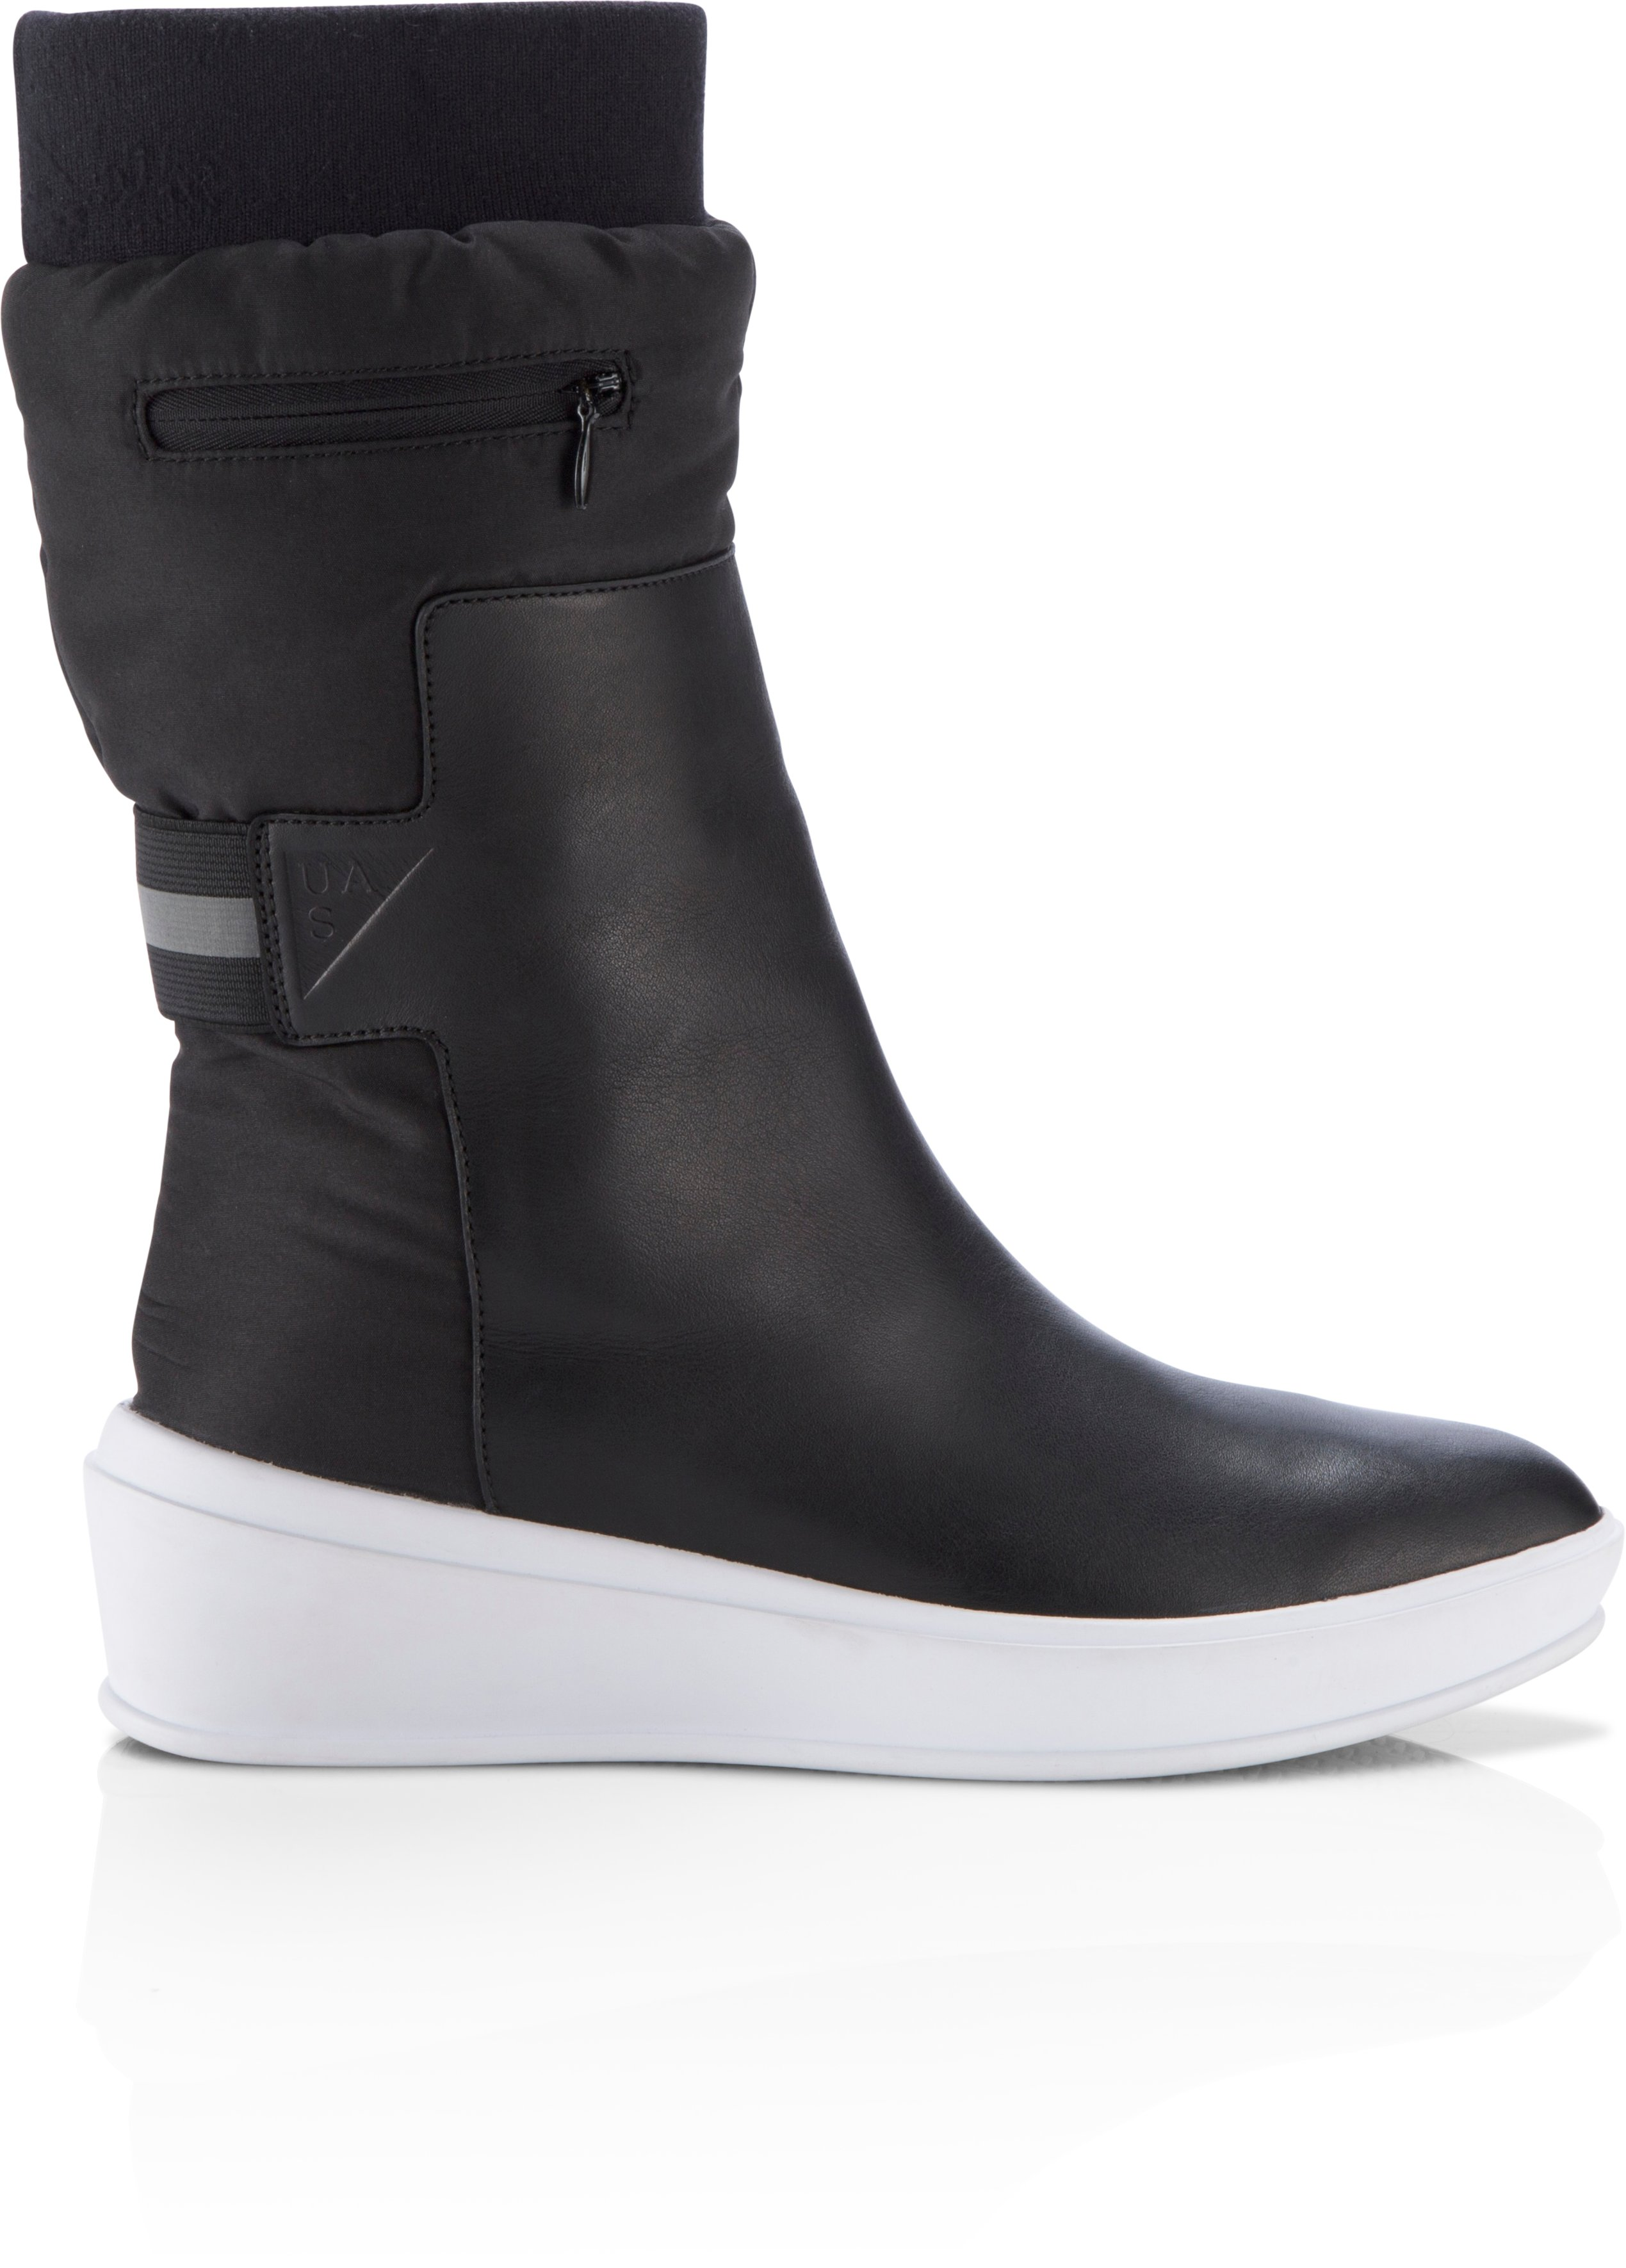 Women's UAS Elevated Wedge Boots, Black , zoomed image